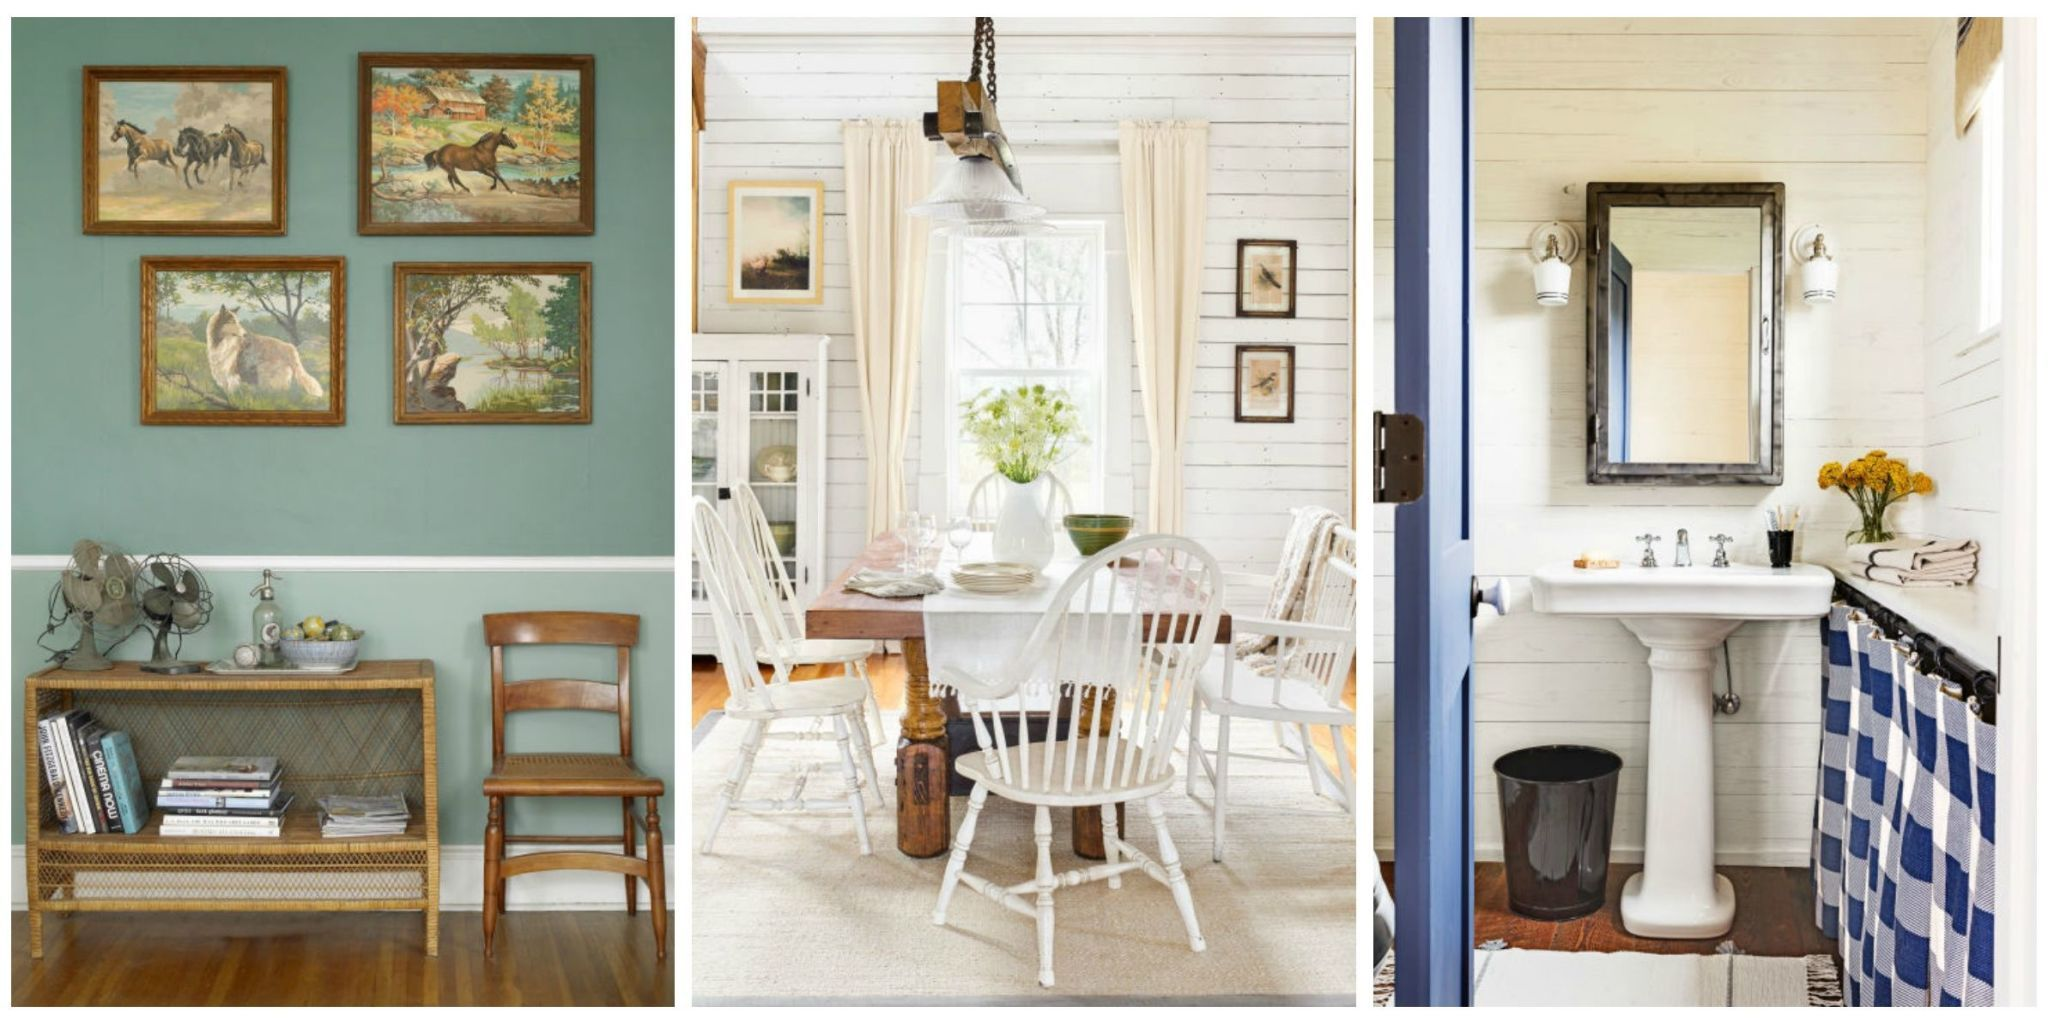 Charming Small Decorating Projects Can Freshen Up Your Home And Be Inexpensive. Try  One Or Two Of These Budget Friendly Fixes For An Instant Update!